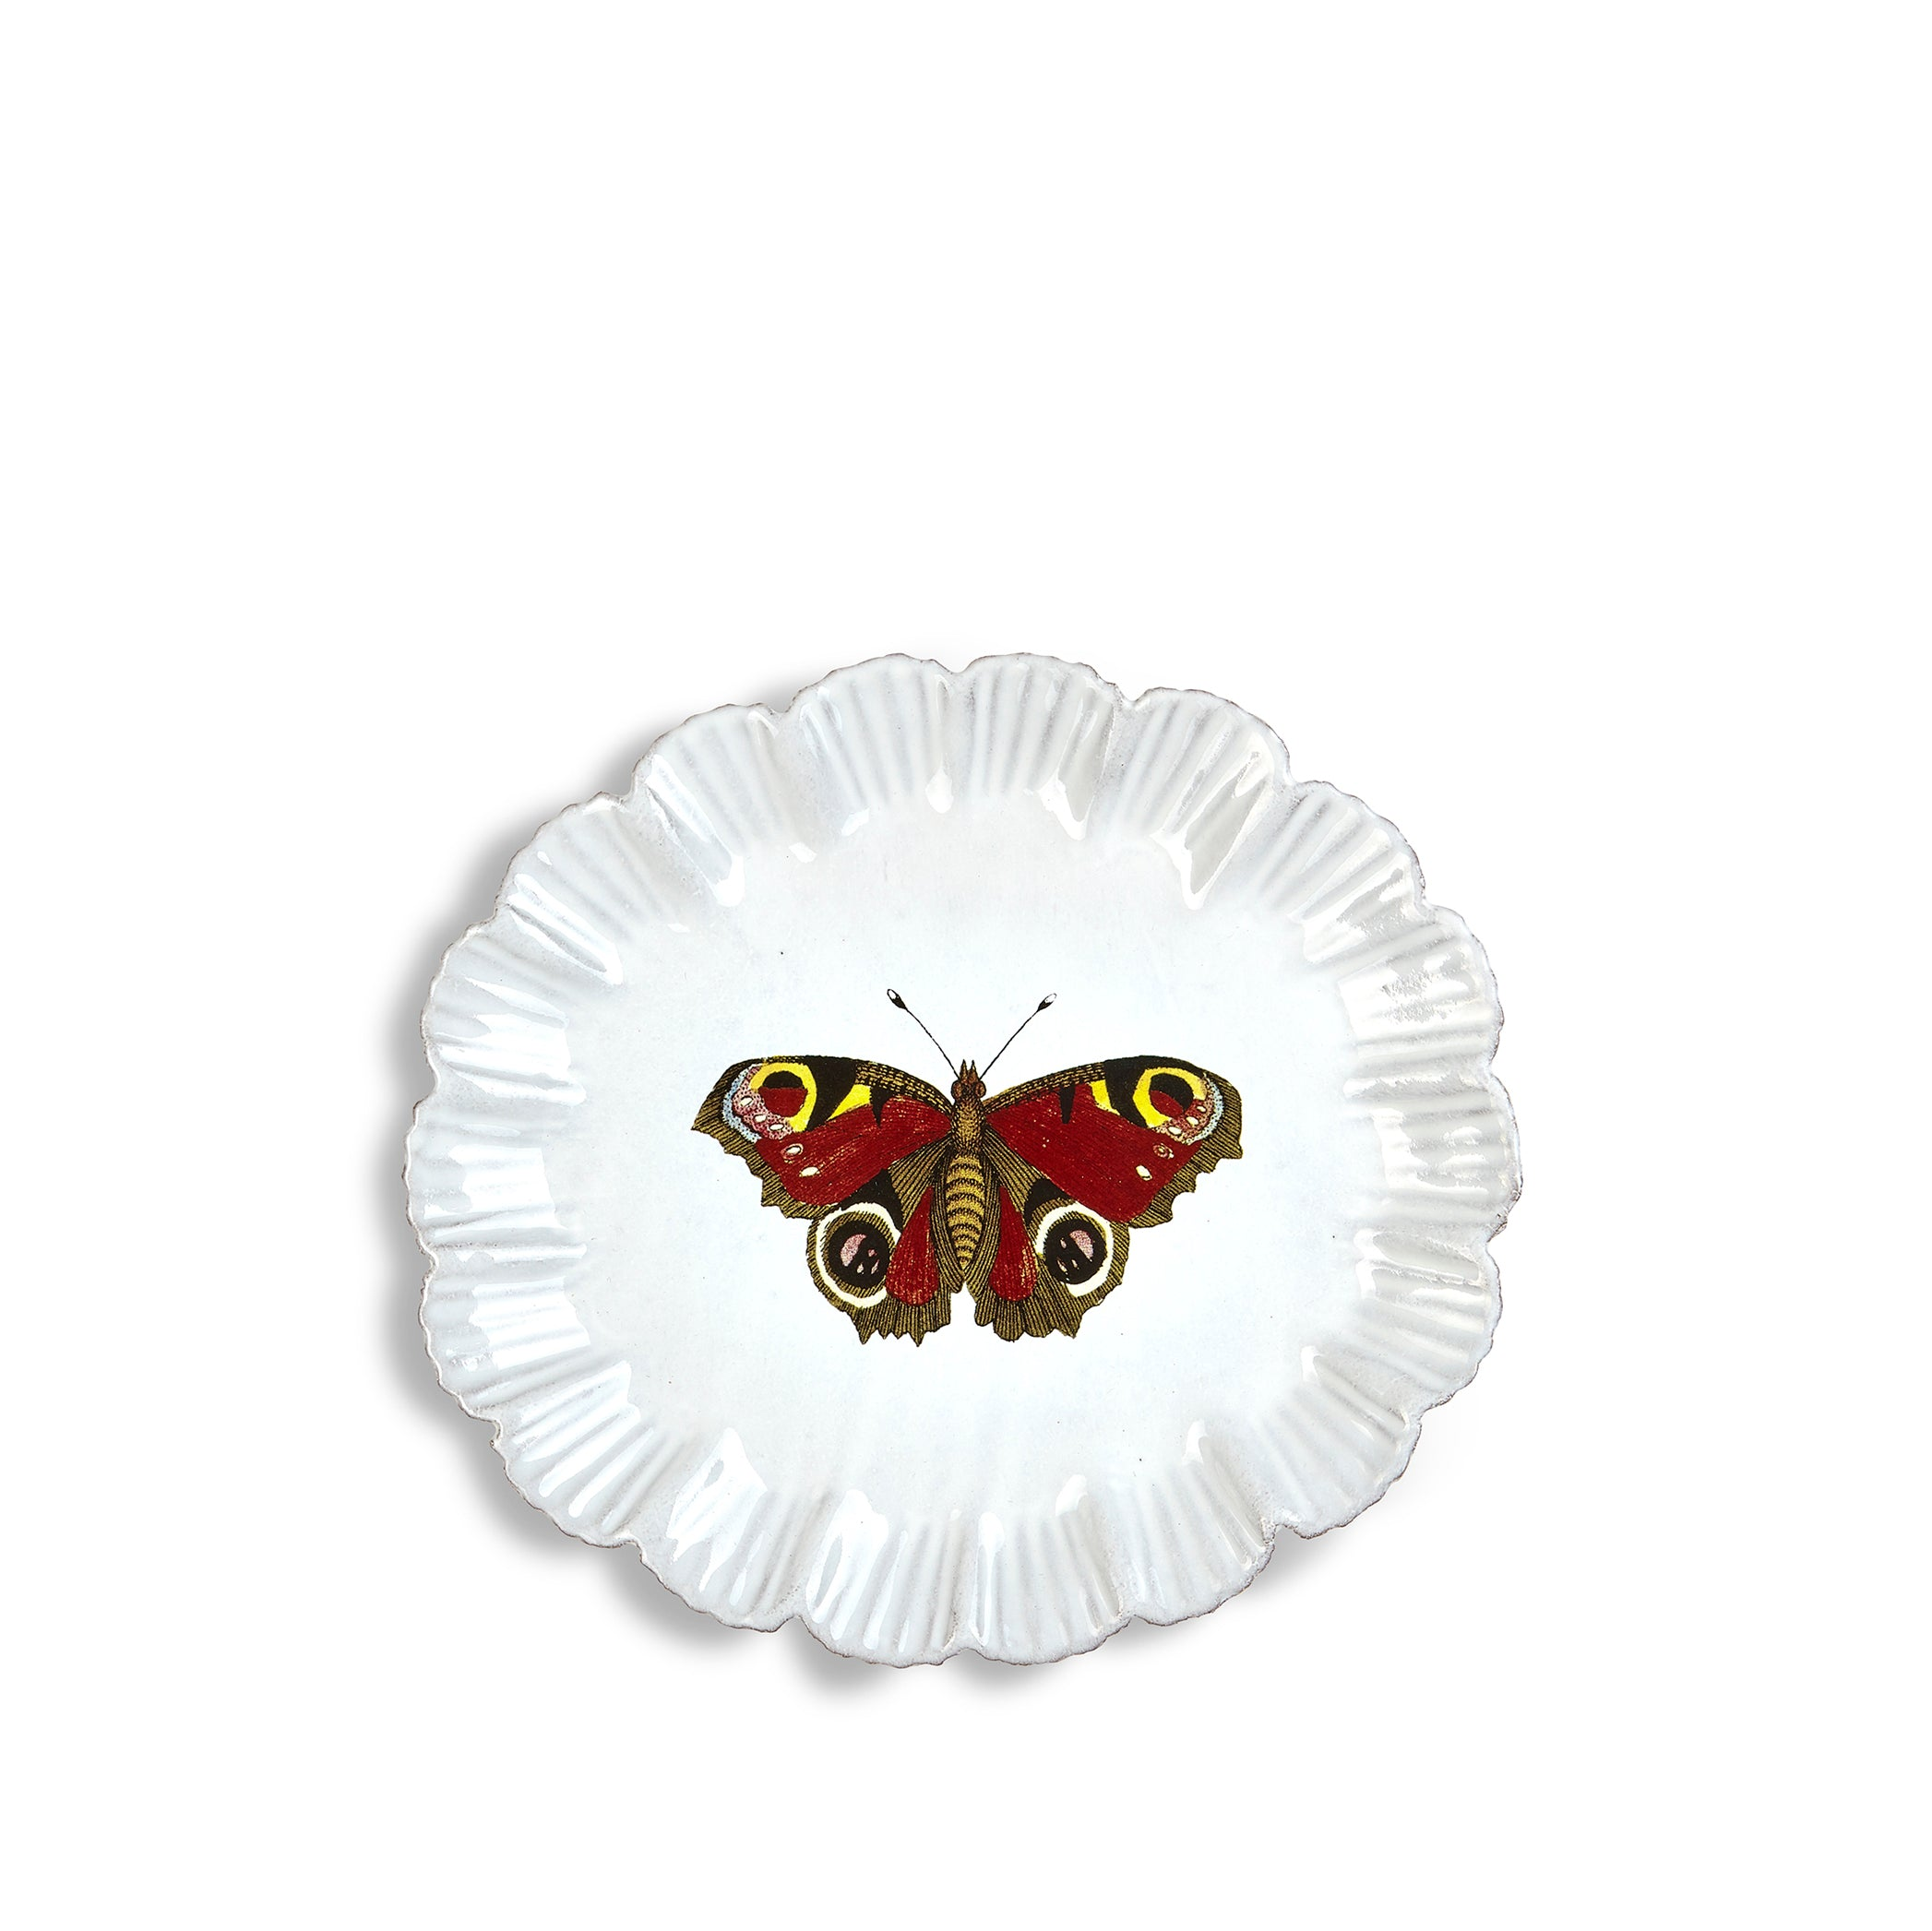 Burgundy Butterfly Dinner Plate by Astier de Villatte